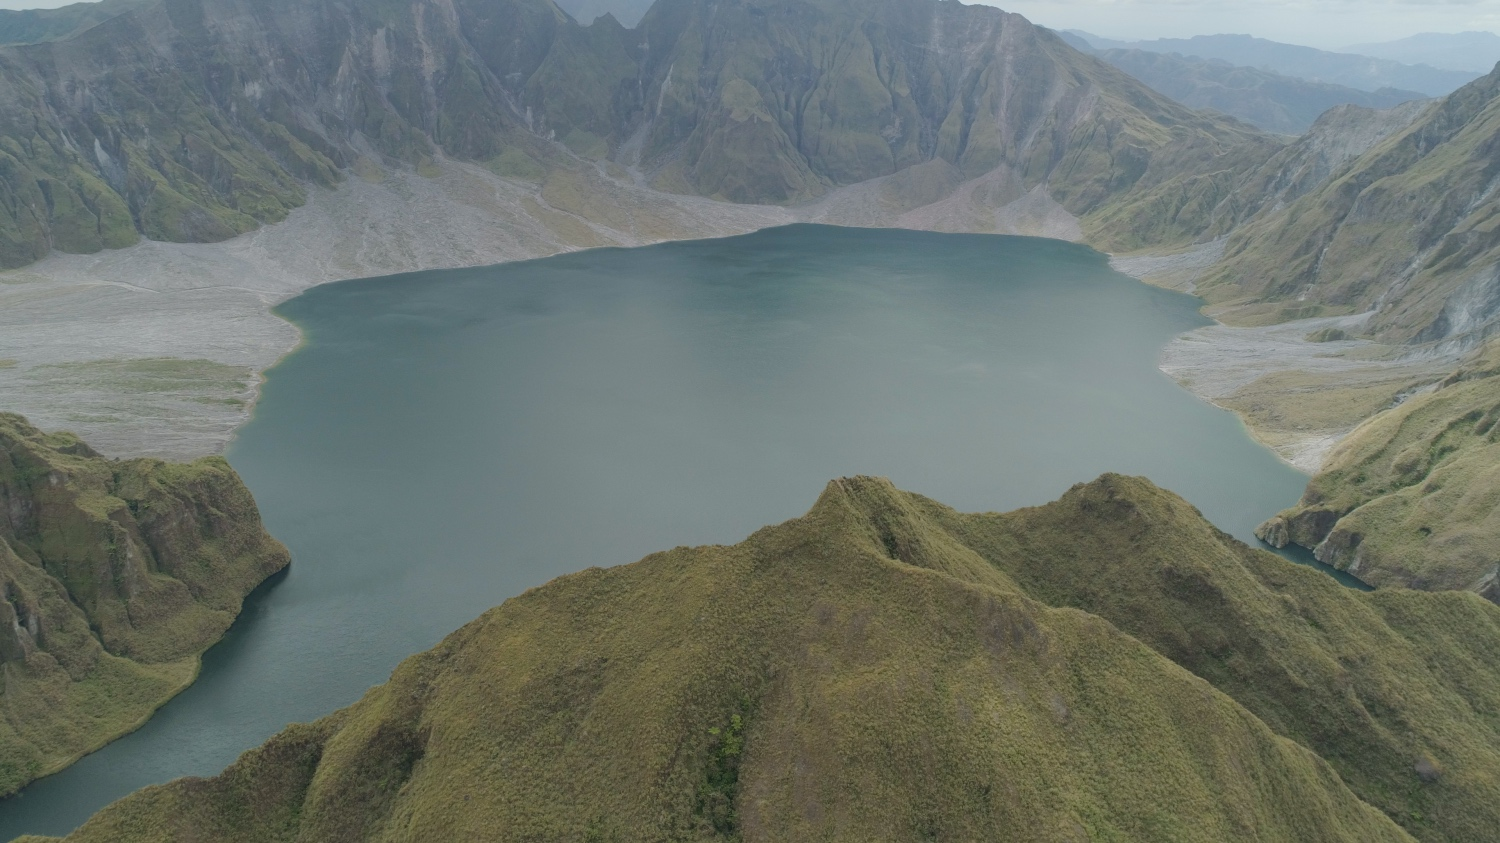 Lake Pinatubo is a crater lake that formed after Mount Pinatubo's eruption in 1991. It is the deepest lake in the country.